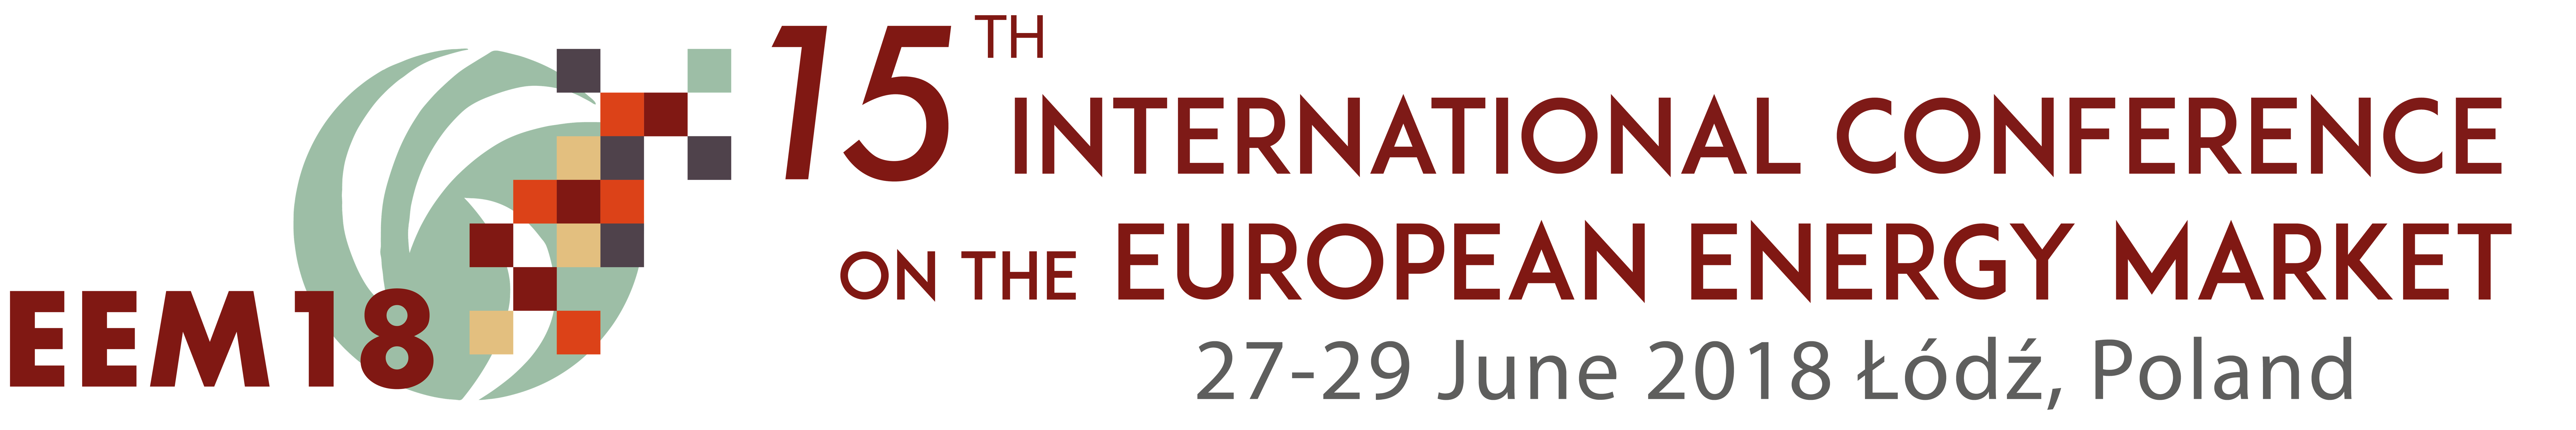 XV INTERNATIONAL CONFERENCE ON THE EUROPEAN ENERGY MARKET